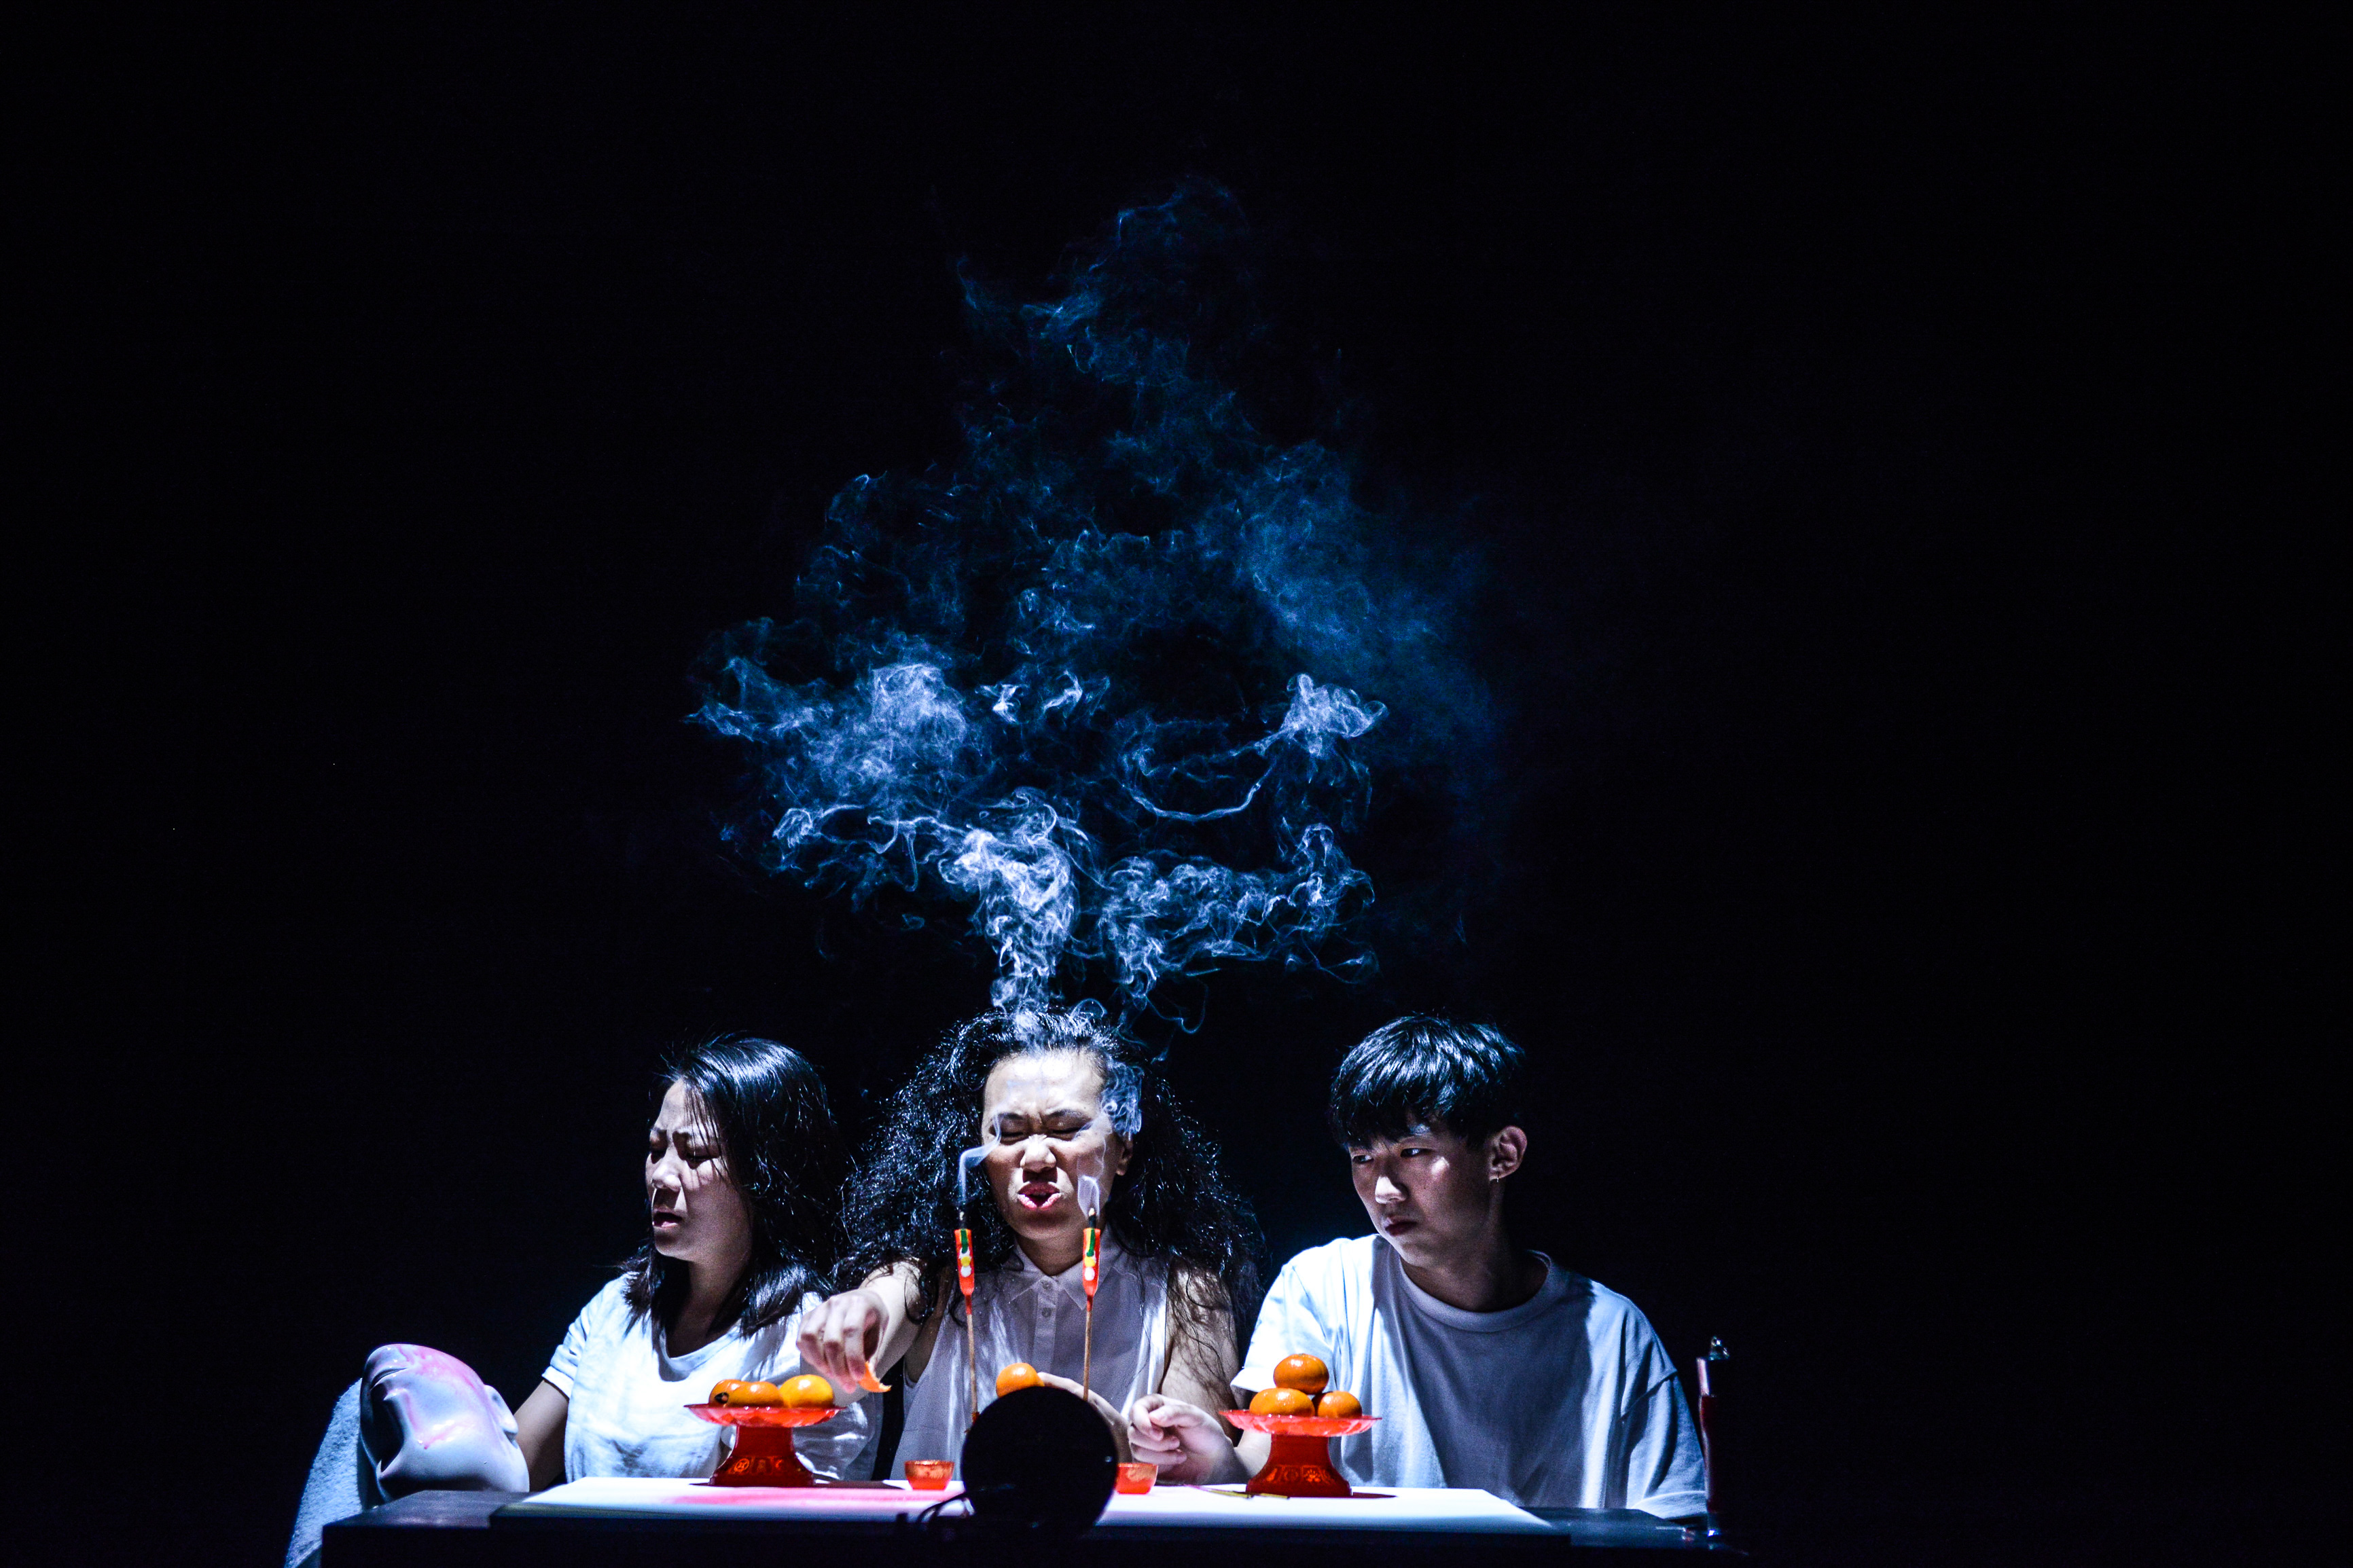 The Furies Variations, Rooftop Productions Theatre Hong Kong 2018 | Featuring: Chou Henick, Michelle Li, Wong On Ting | Tagged as: Show, The Furies Variations | Photo: Fung Wai Sun |  (Rooftop Productions • Hong Kong Theatre Company)